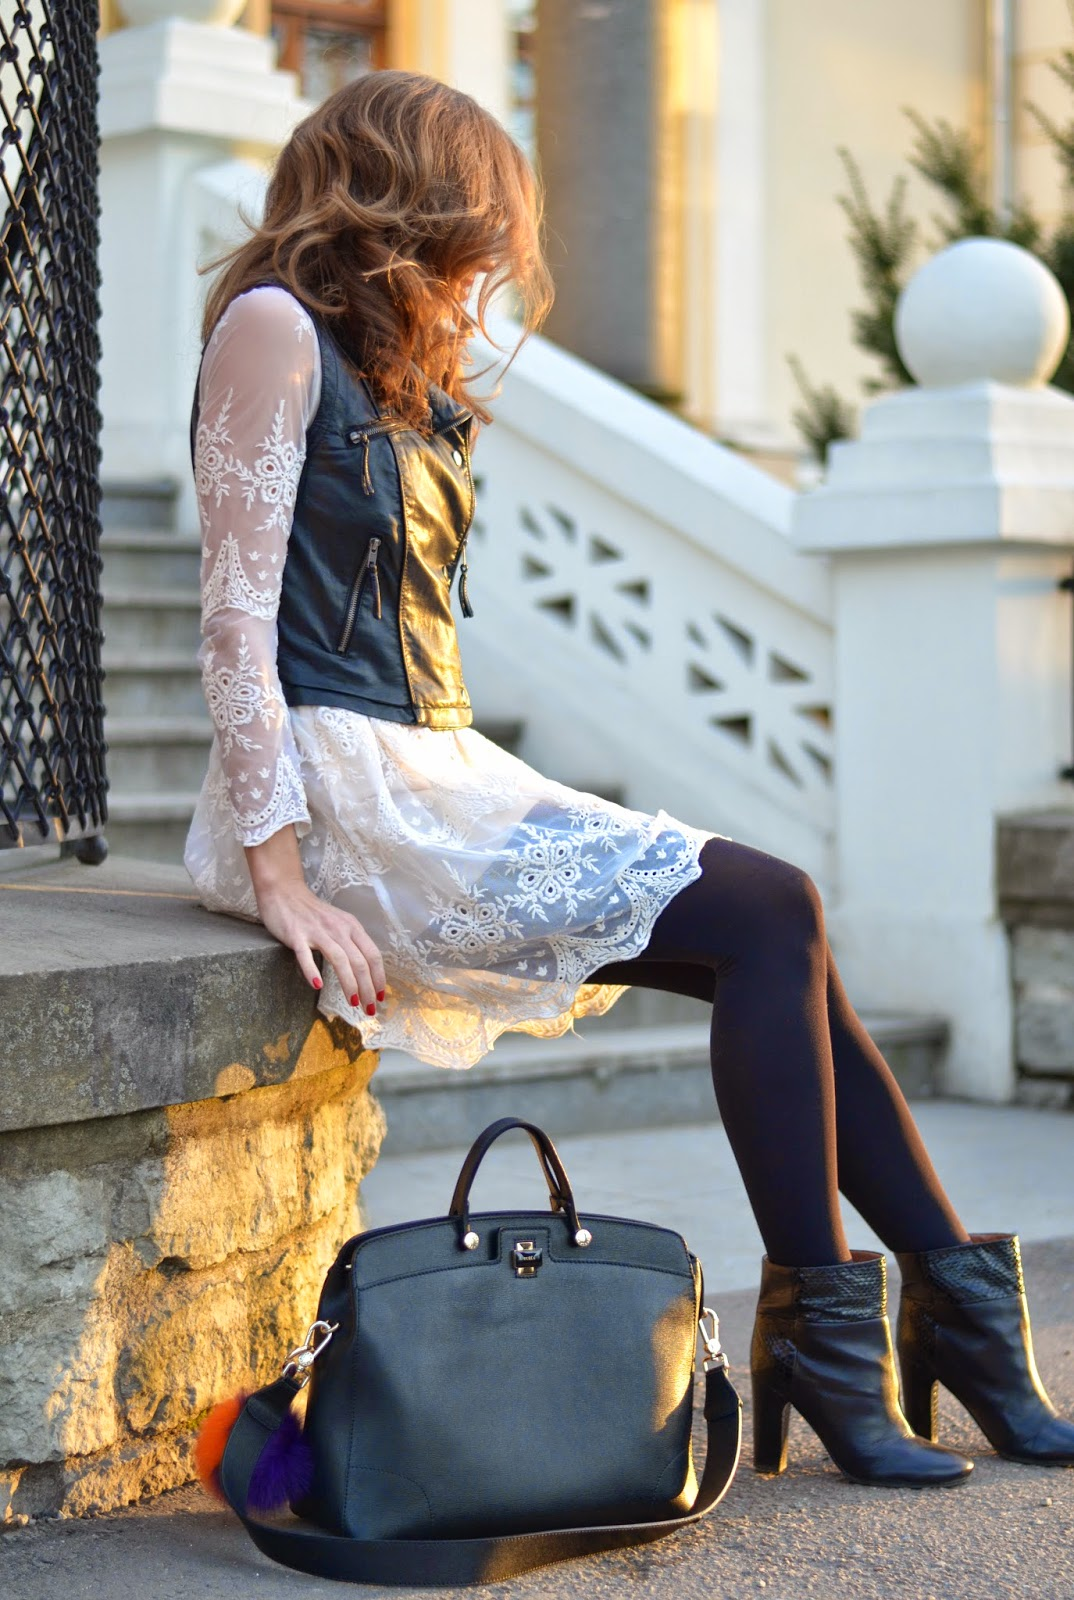 furla-black-bag-chloe-boots-chicwish-white-lace-dress